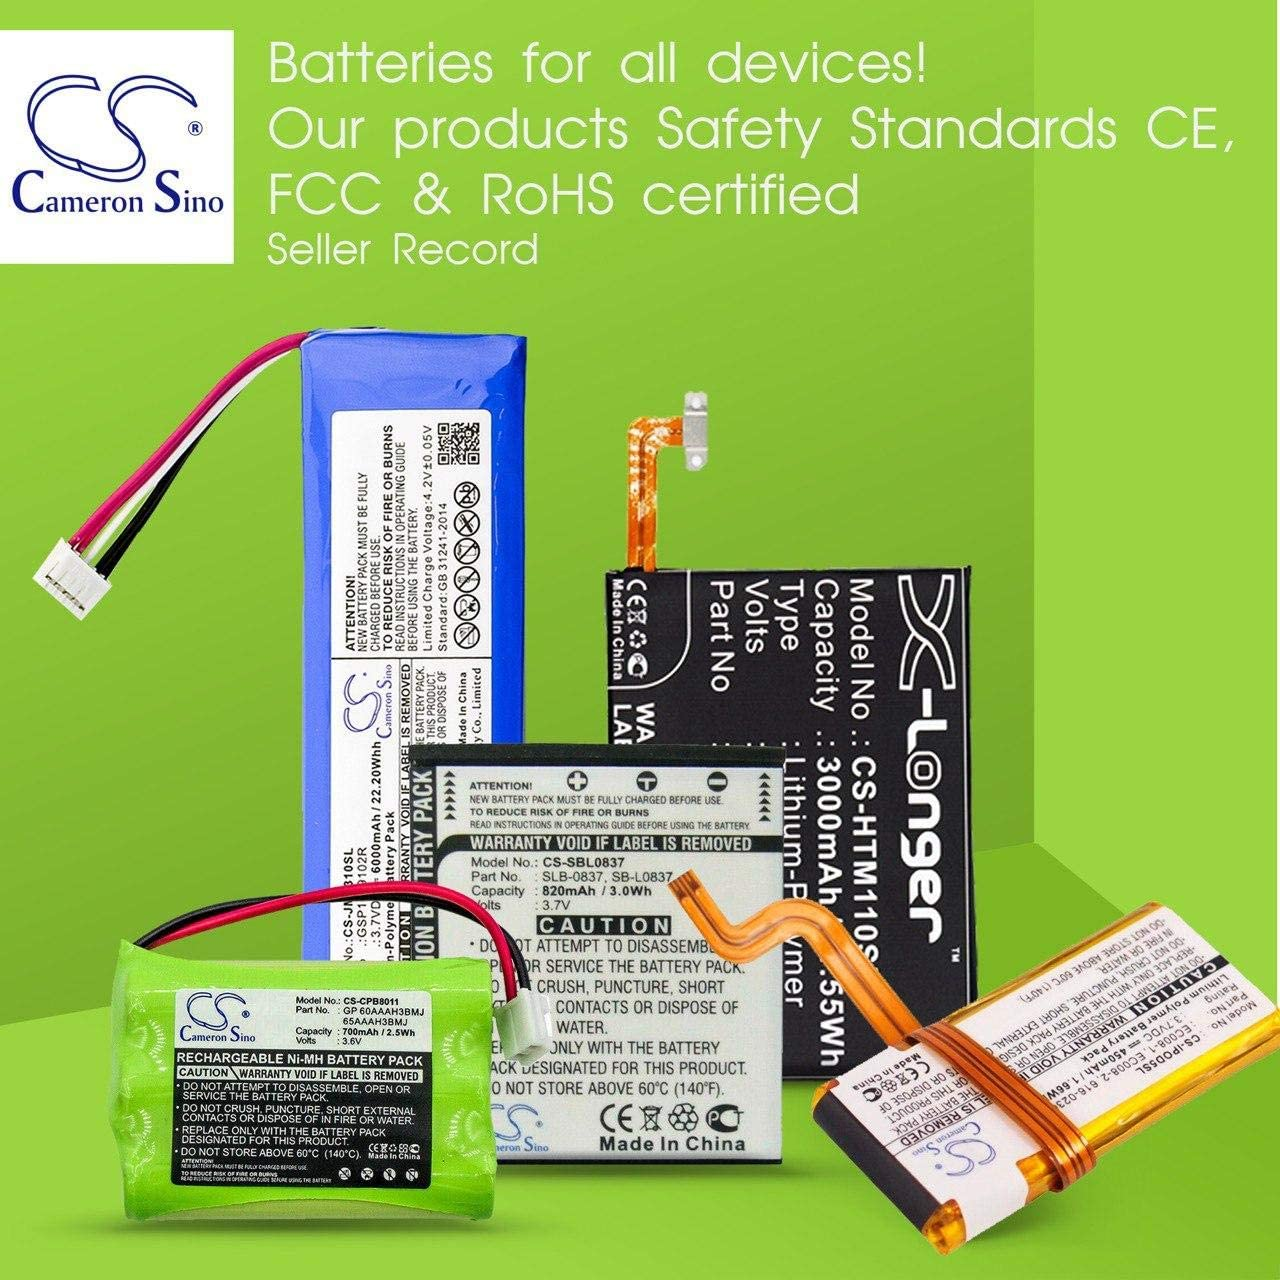 SM-T360 Battery for Samsung Galaxy Tab Active Galaxy Tab Active 2 SM-T395N Galaxy Tab Active 8.0 Galaxy Tab Active WiFi M-T395C